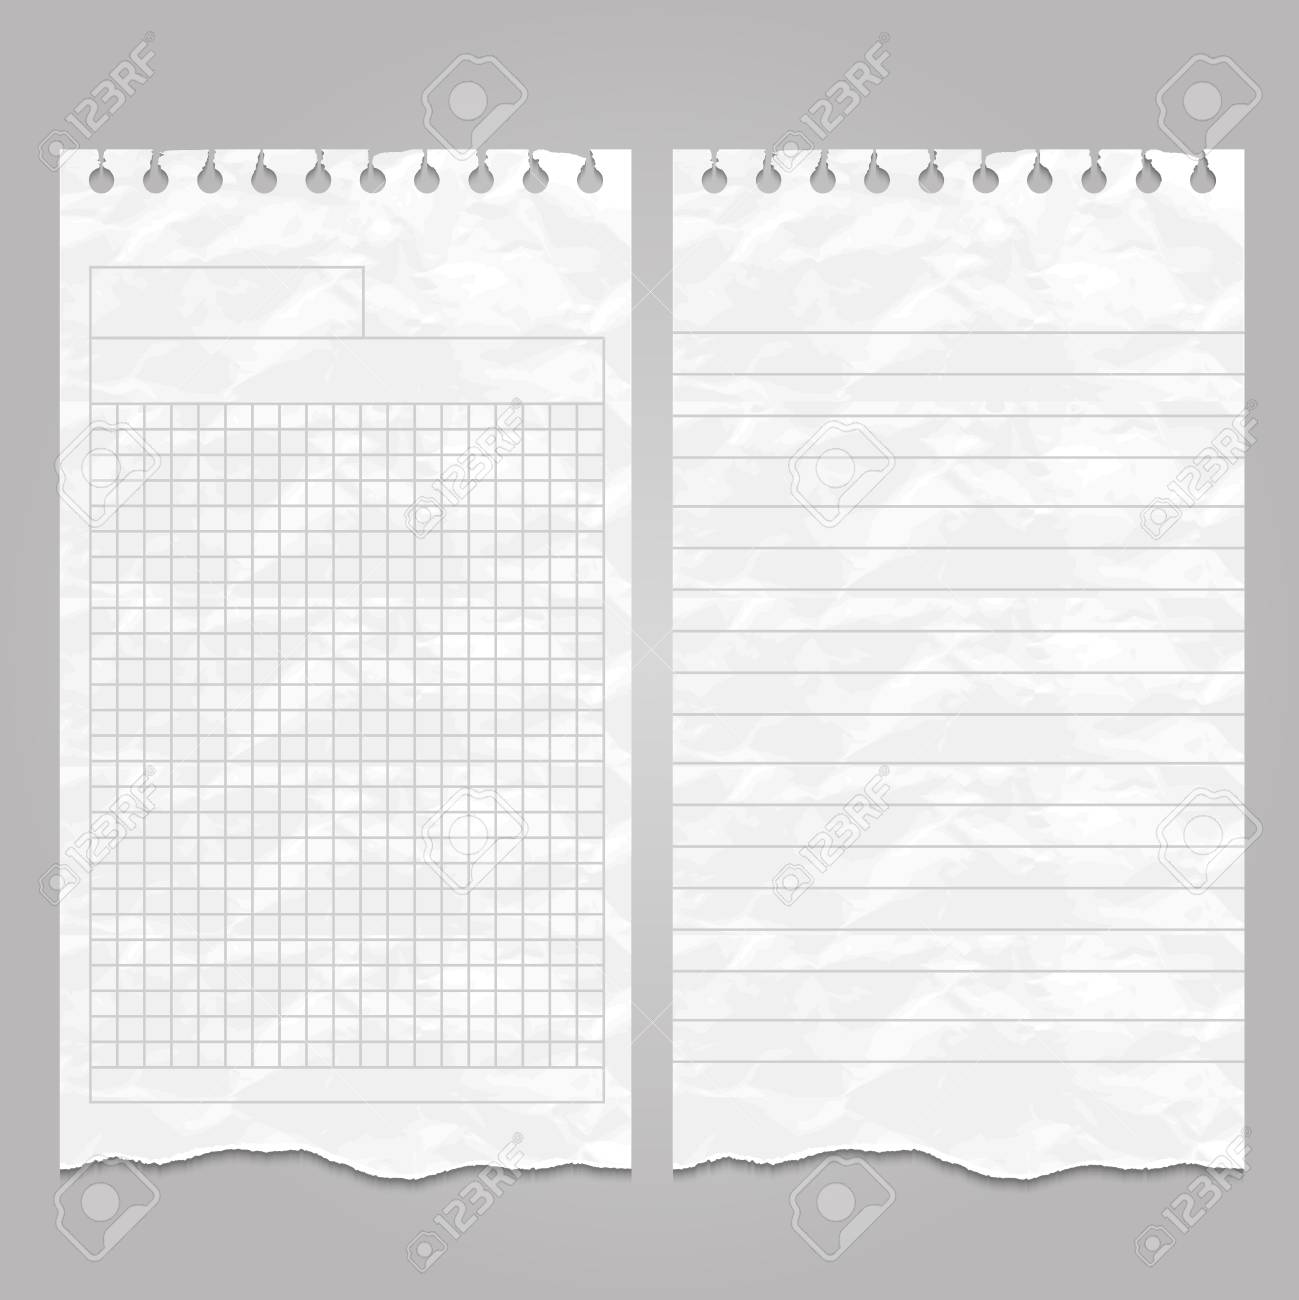 vector wrinkled ripped lined page templates for notes or memo